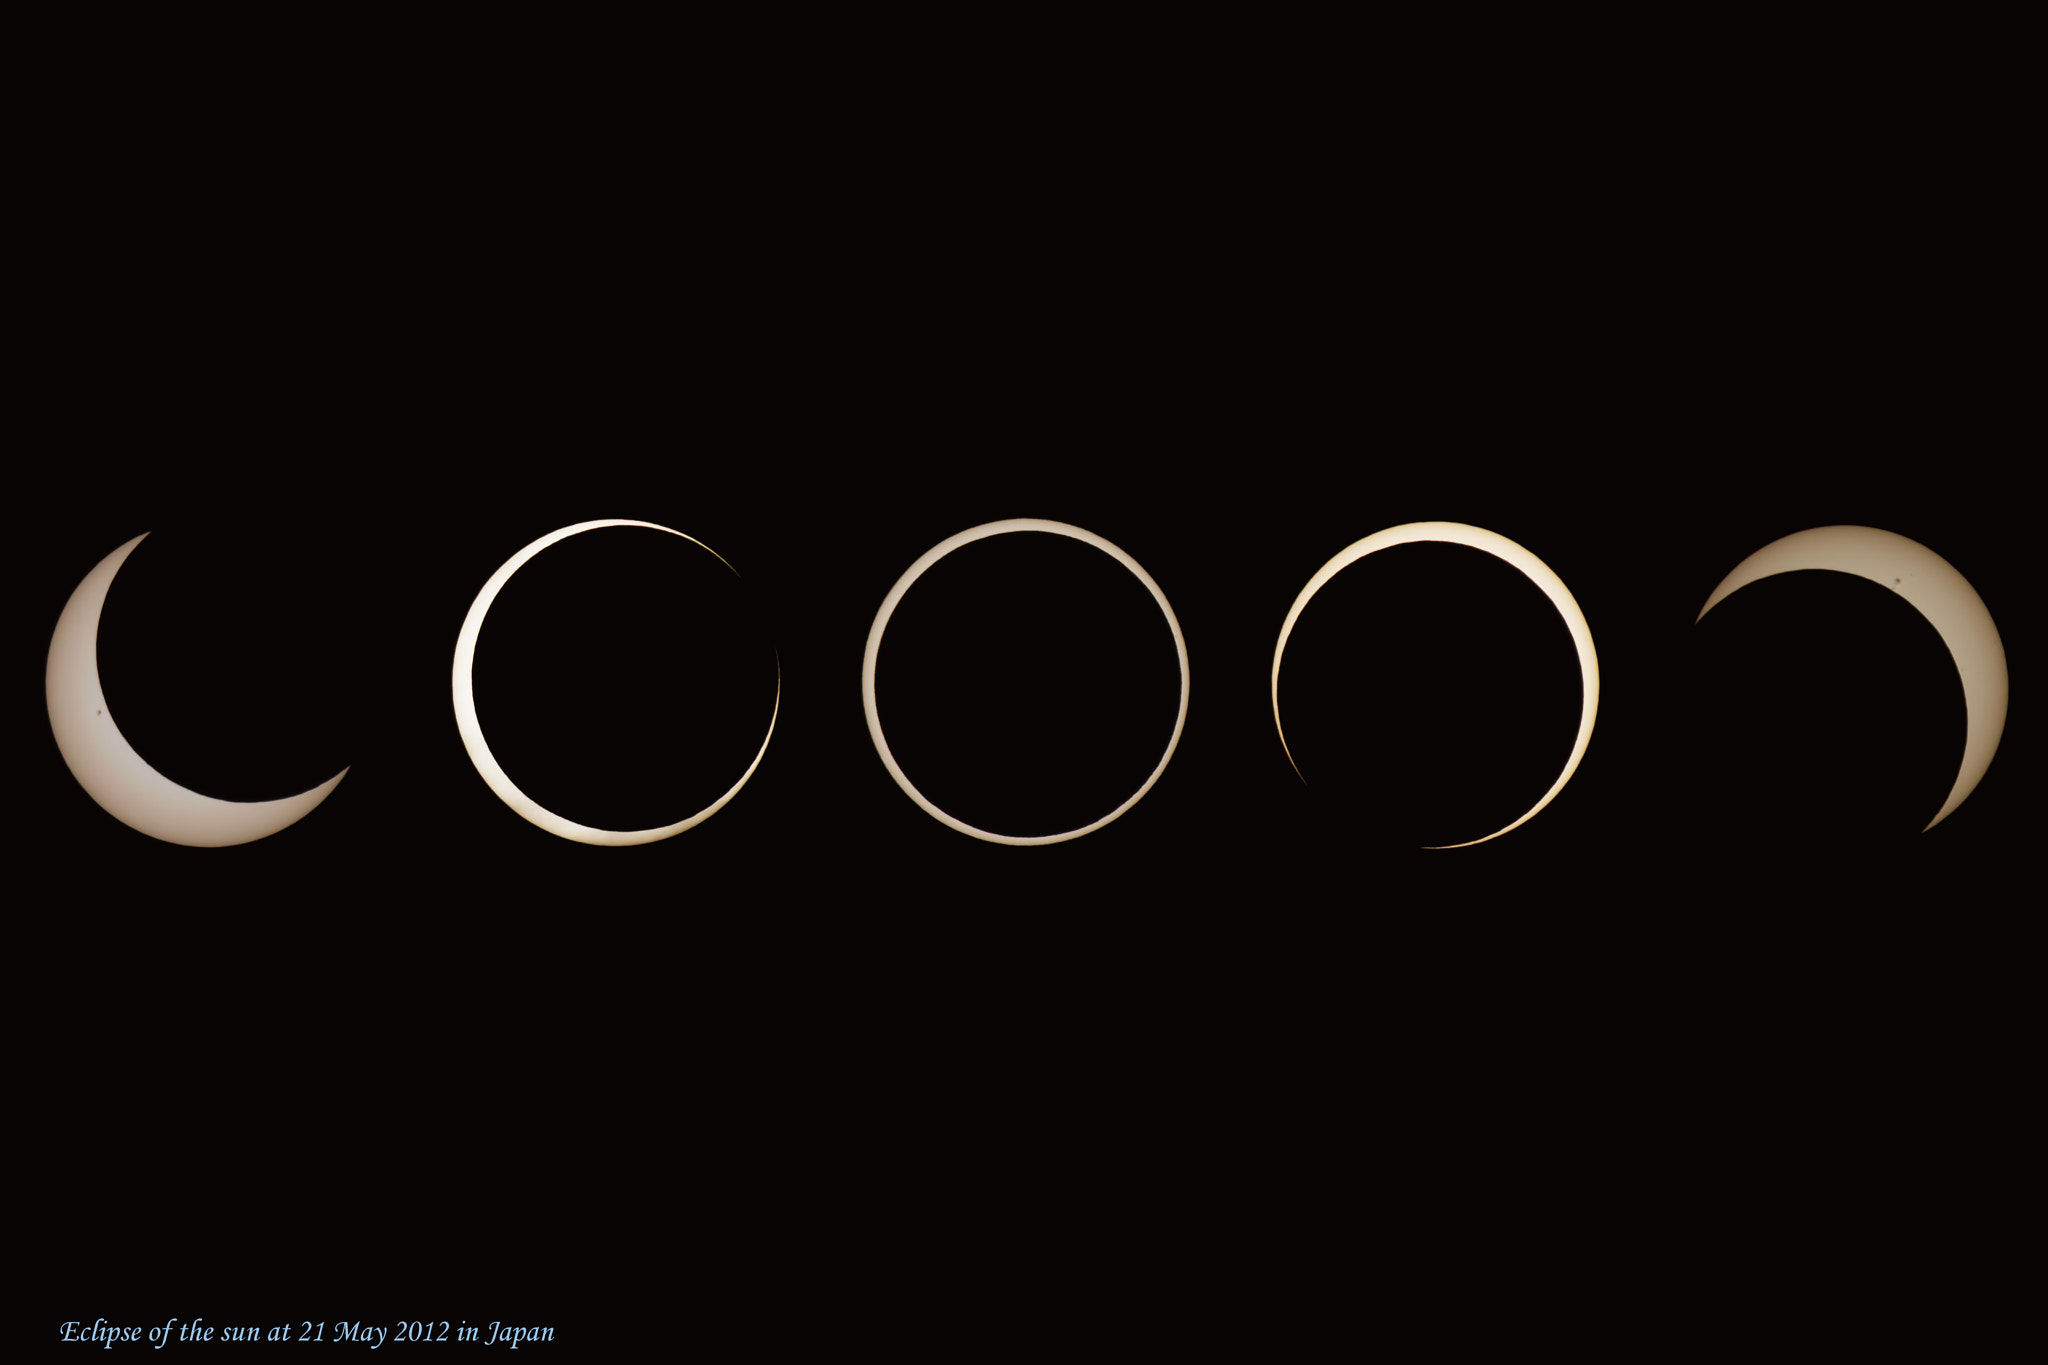 Photograph Eclipse of the sun by MIYAMOTO Y on 500px